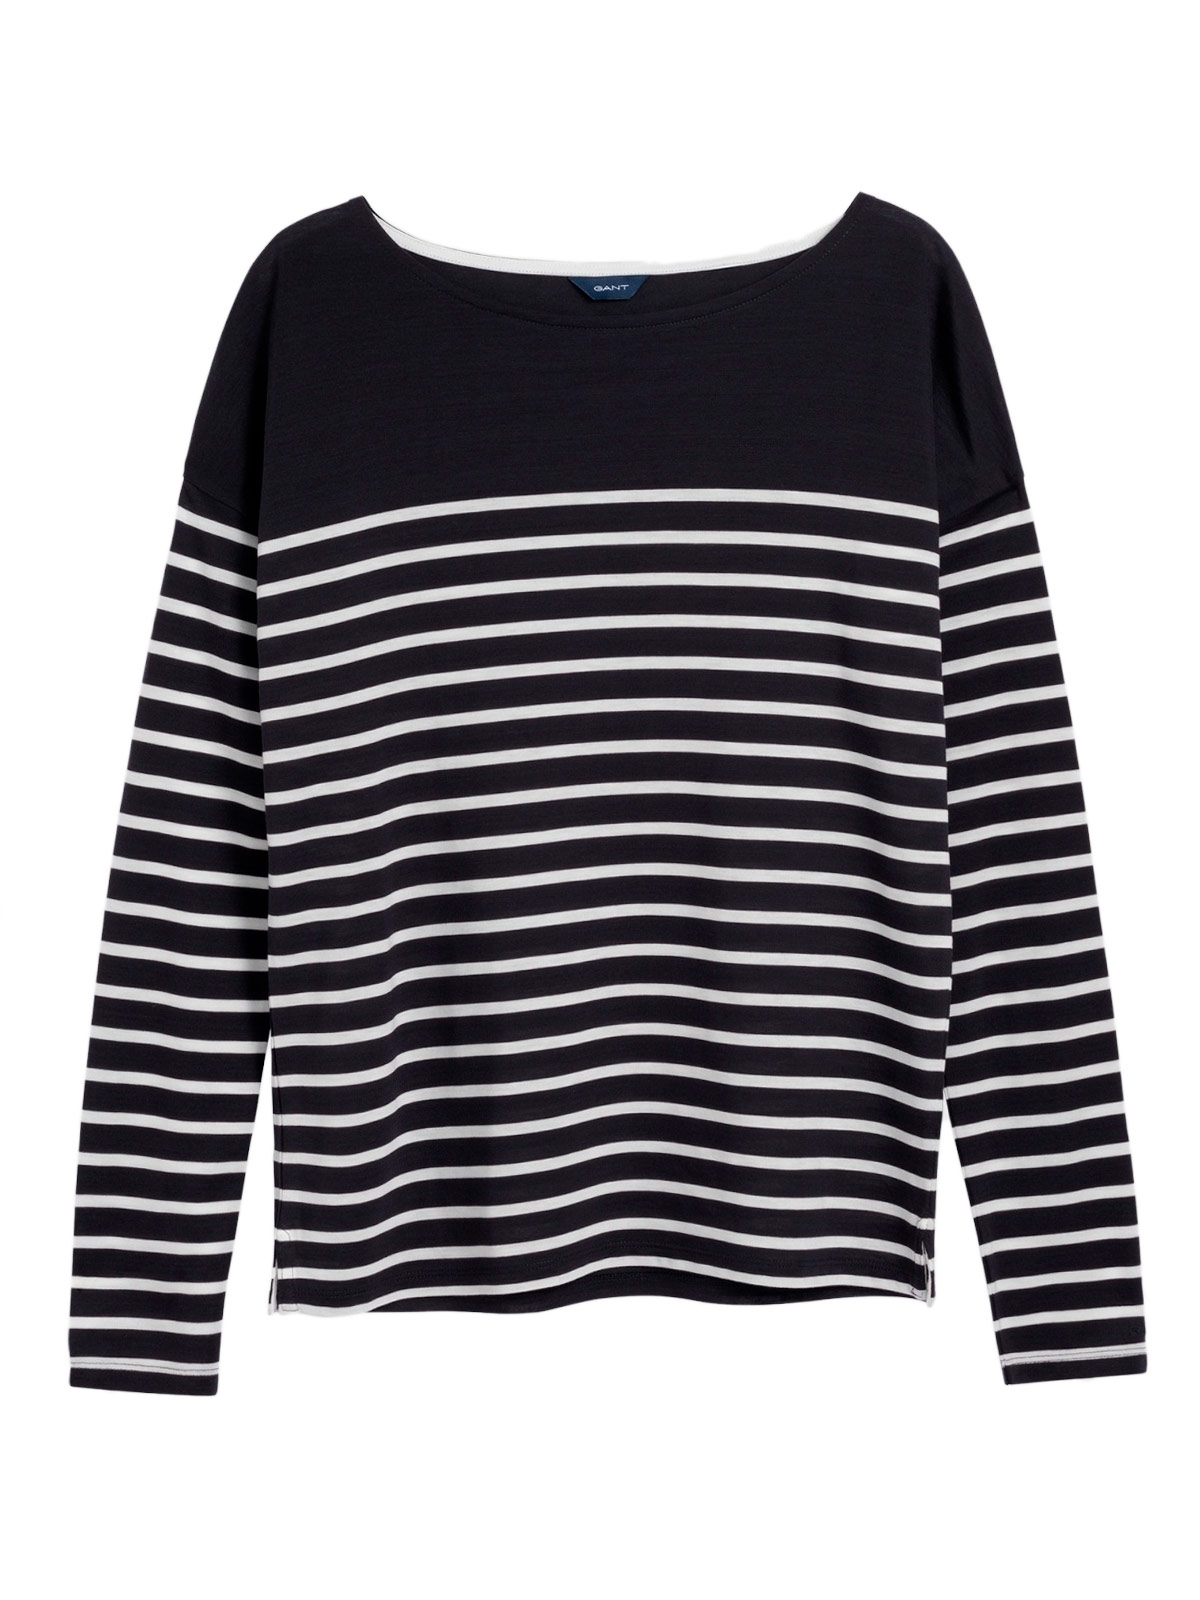 Immagine di GANT | T-SHIRT O1. LIGHT WEIGHT STRIPED TOP